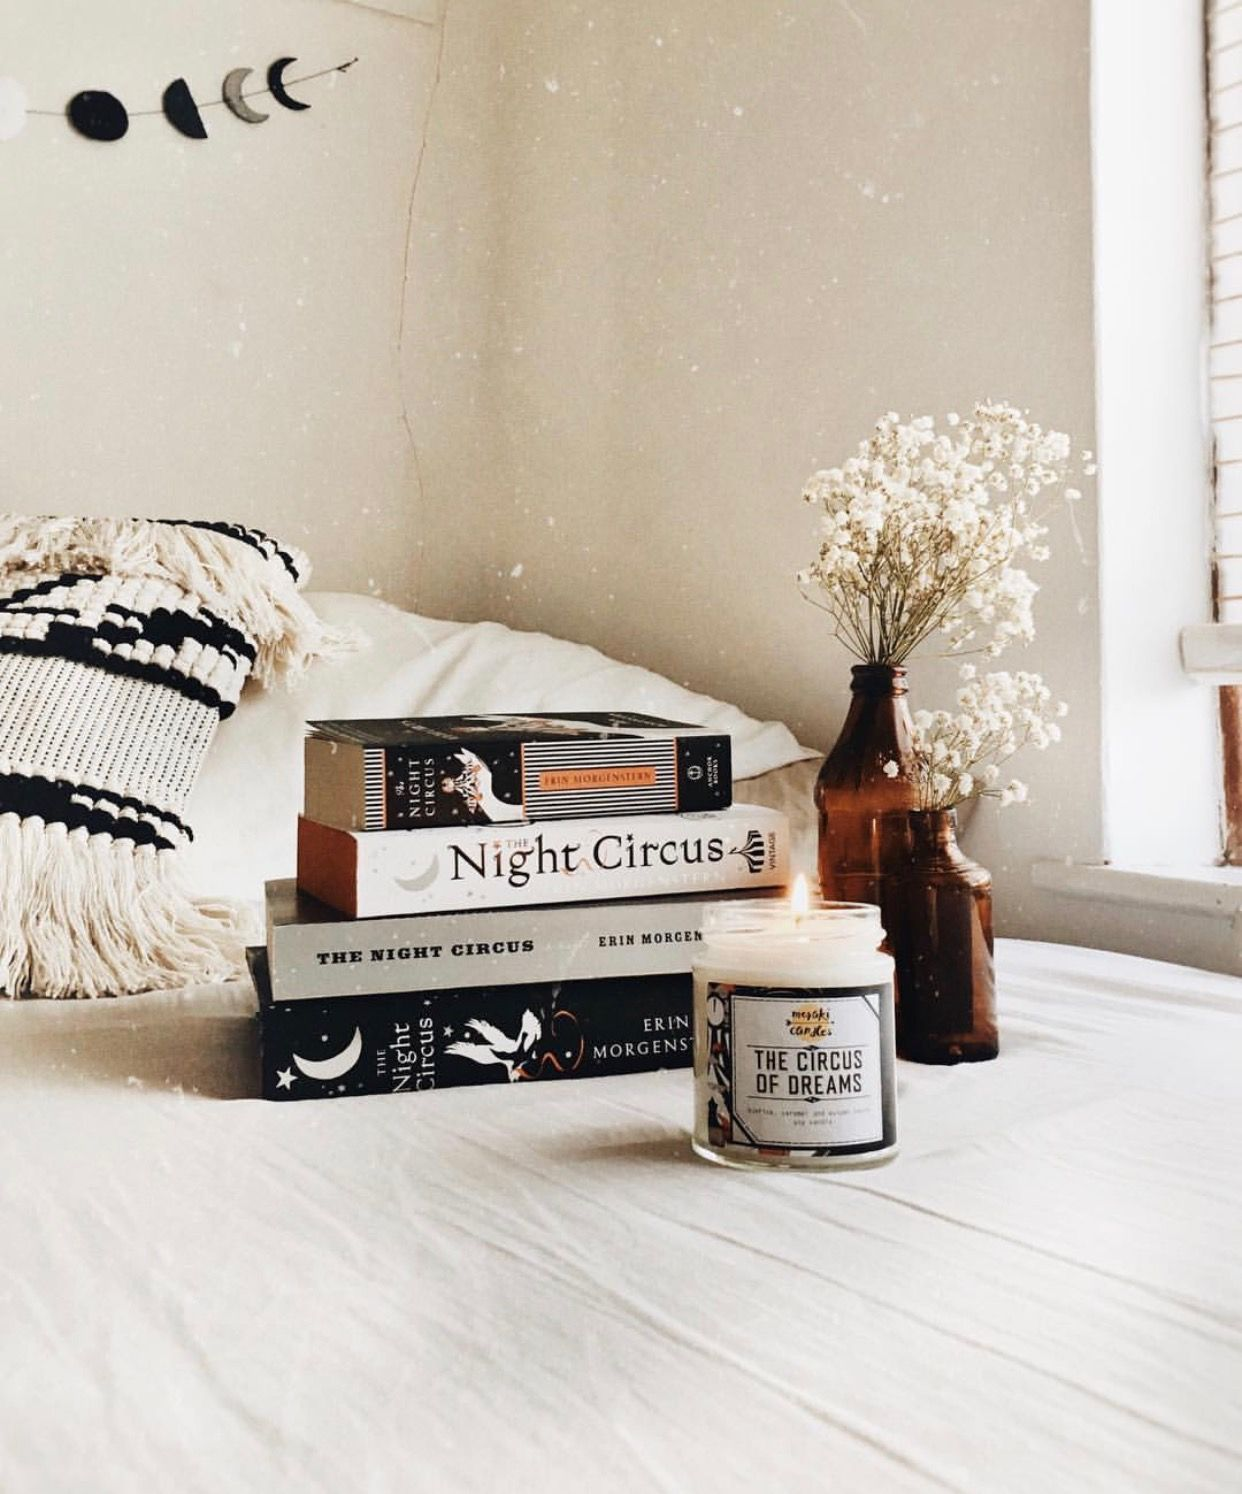 Beautiful Book Stack Bookbloggers Bookworms Bookstacks Book Aesthetic Book Photography Stack Of Books